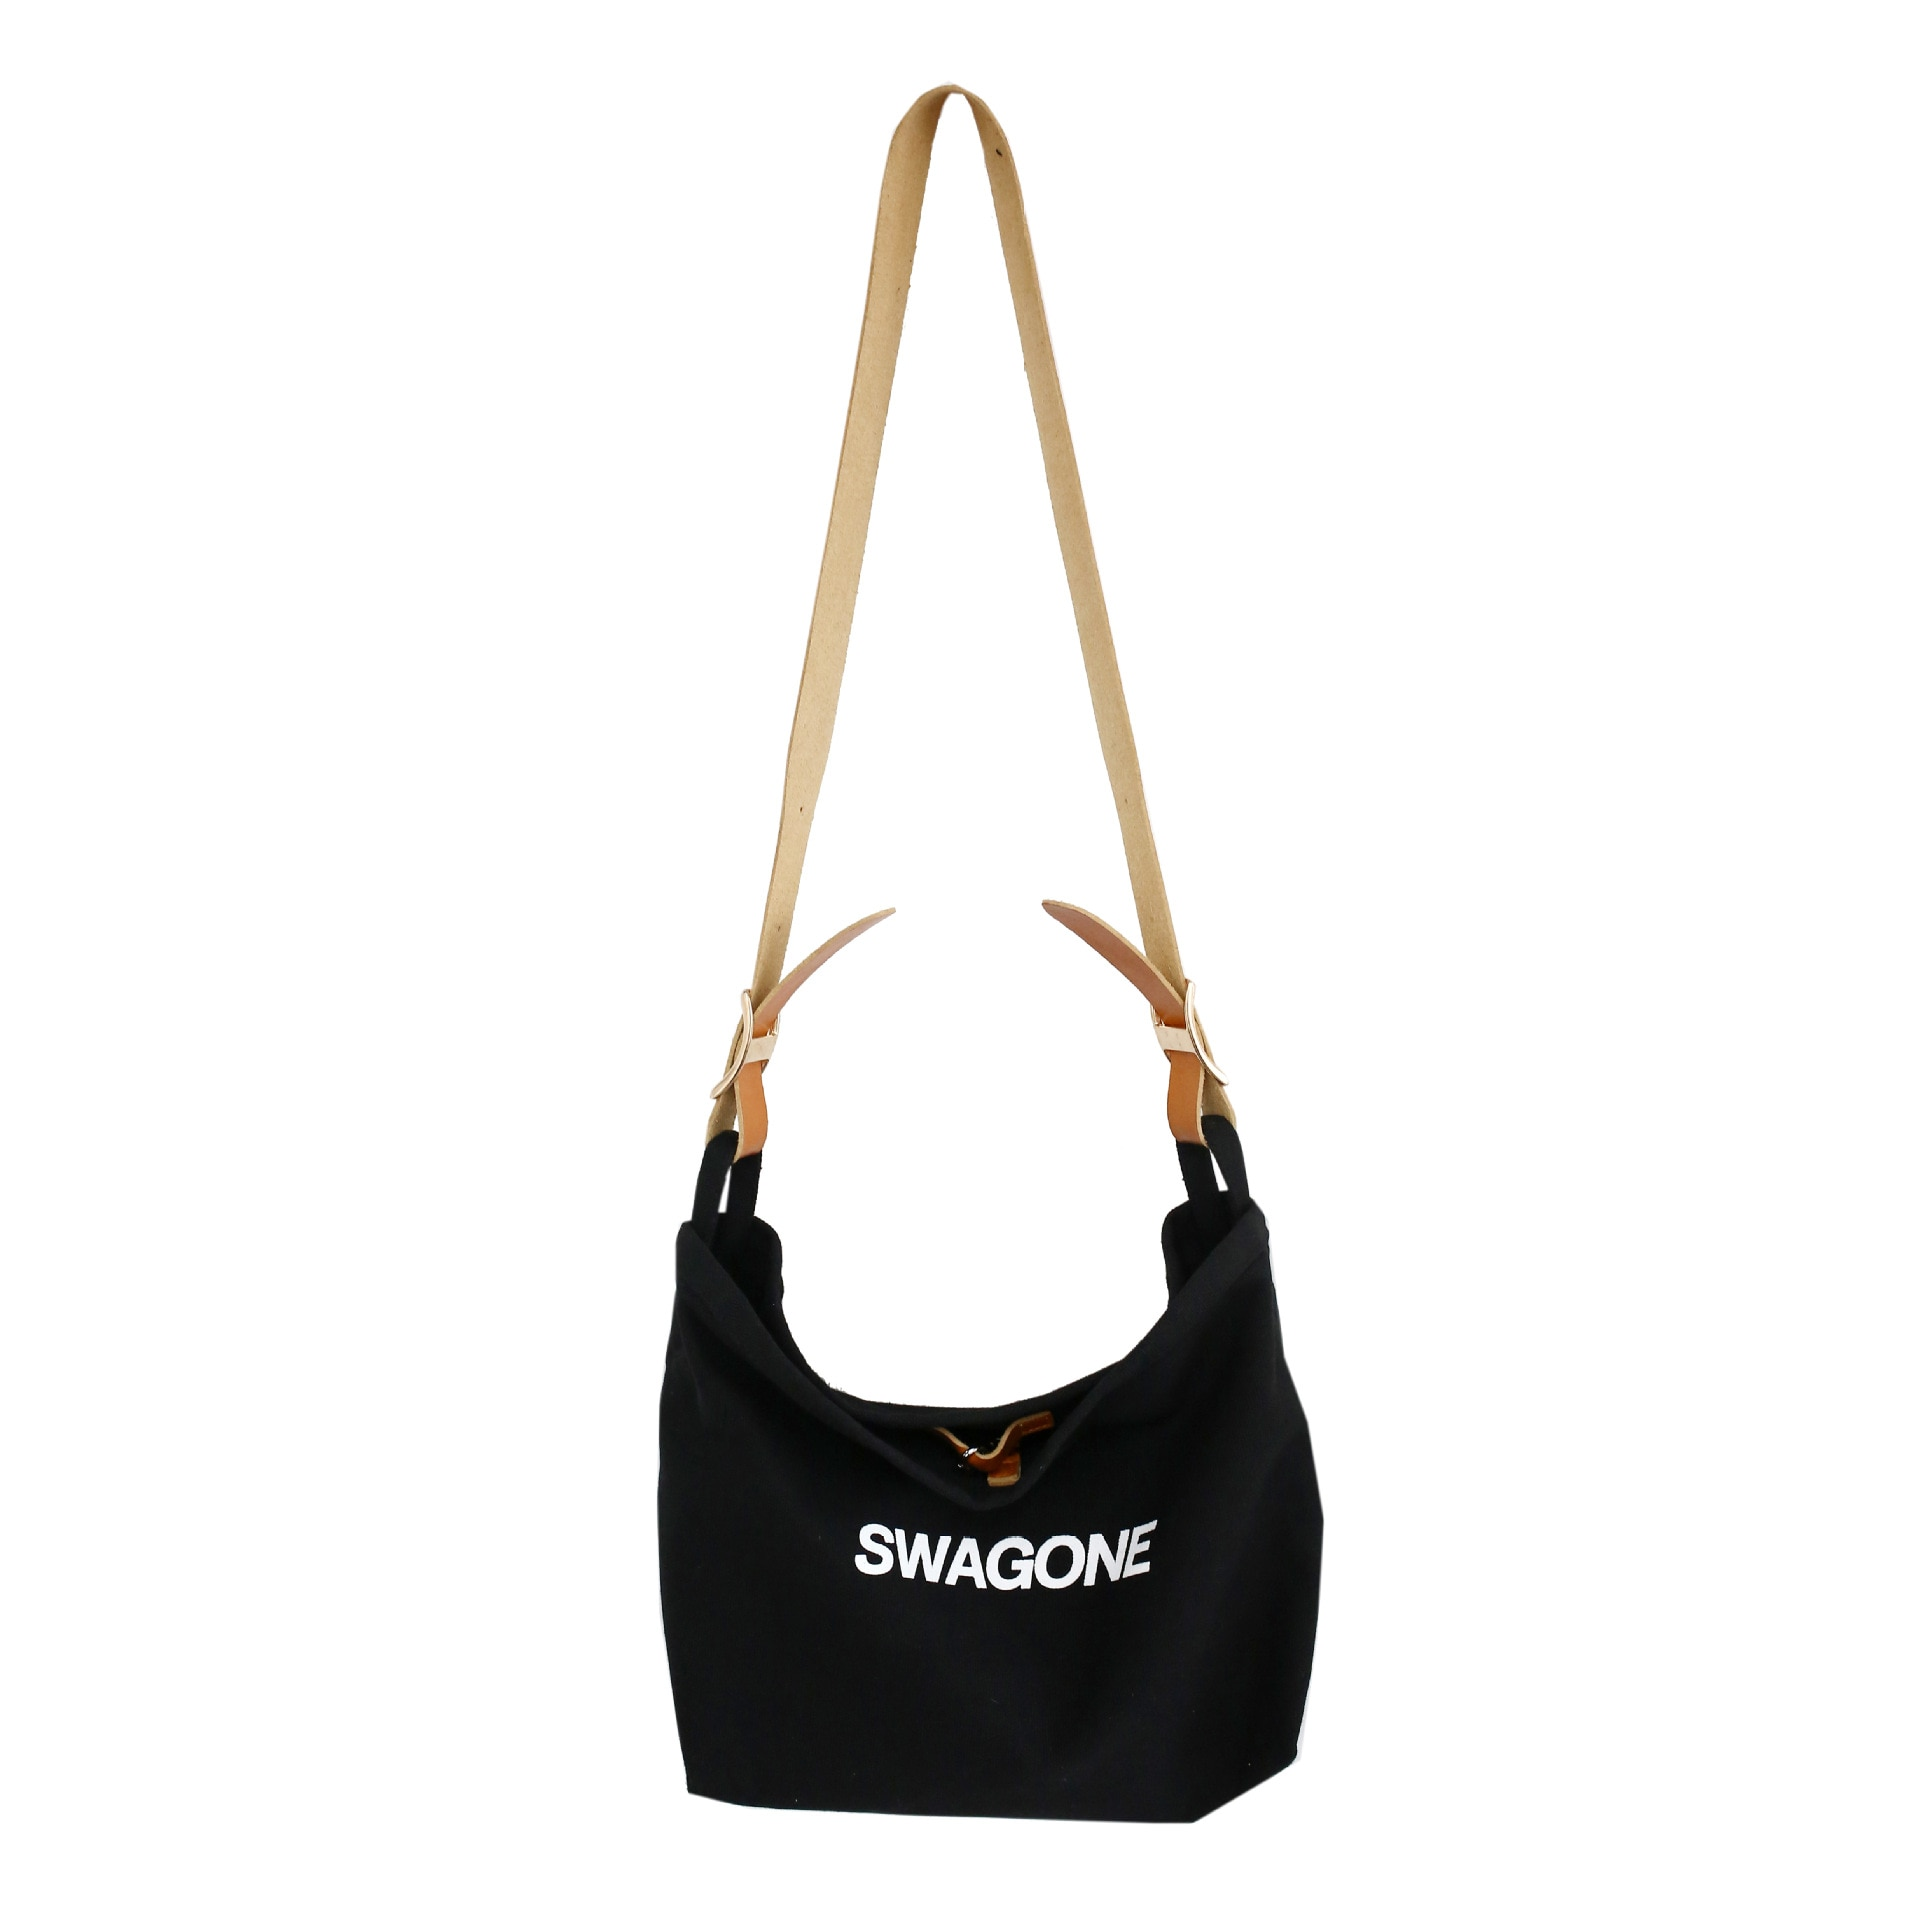 Canvas Shoulder Bags Classic Black Beige Messenger Strong Fabric Bags Leisure Style Crossbody Bags 2021 Minimalist Spring Autumn